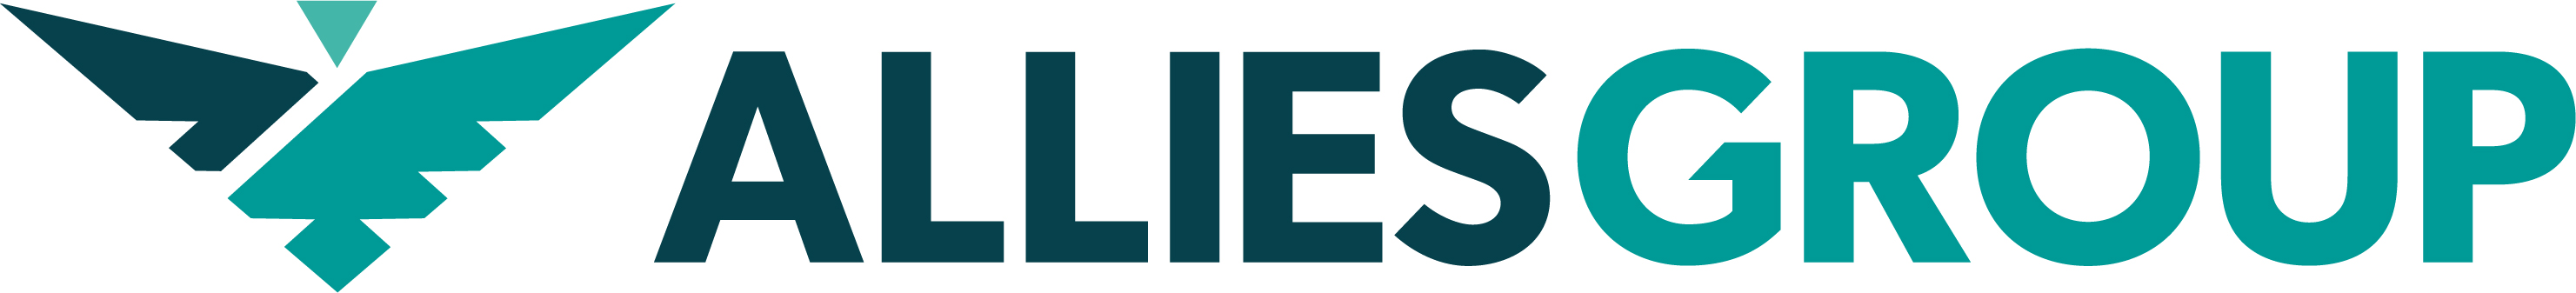 Allies Group logo